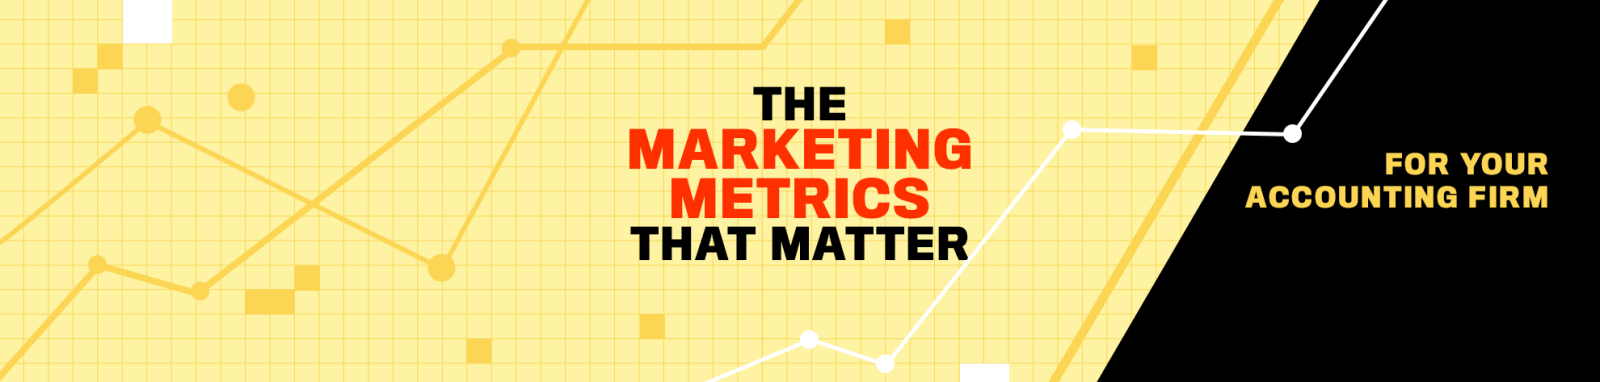 Marketing Metrics That Matter For Your Accounting Firm